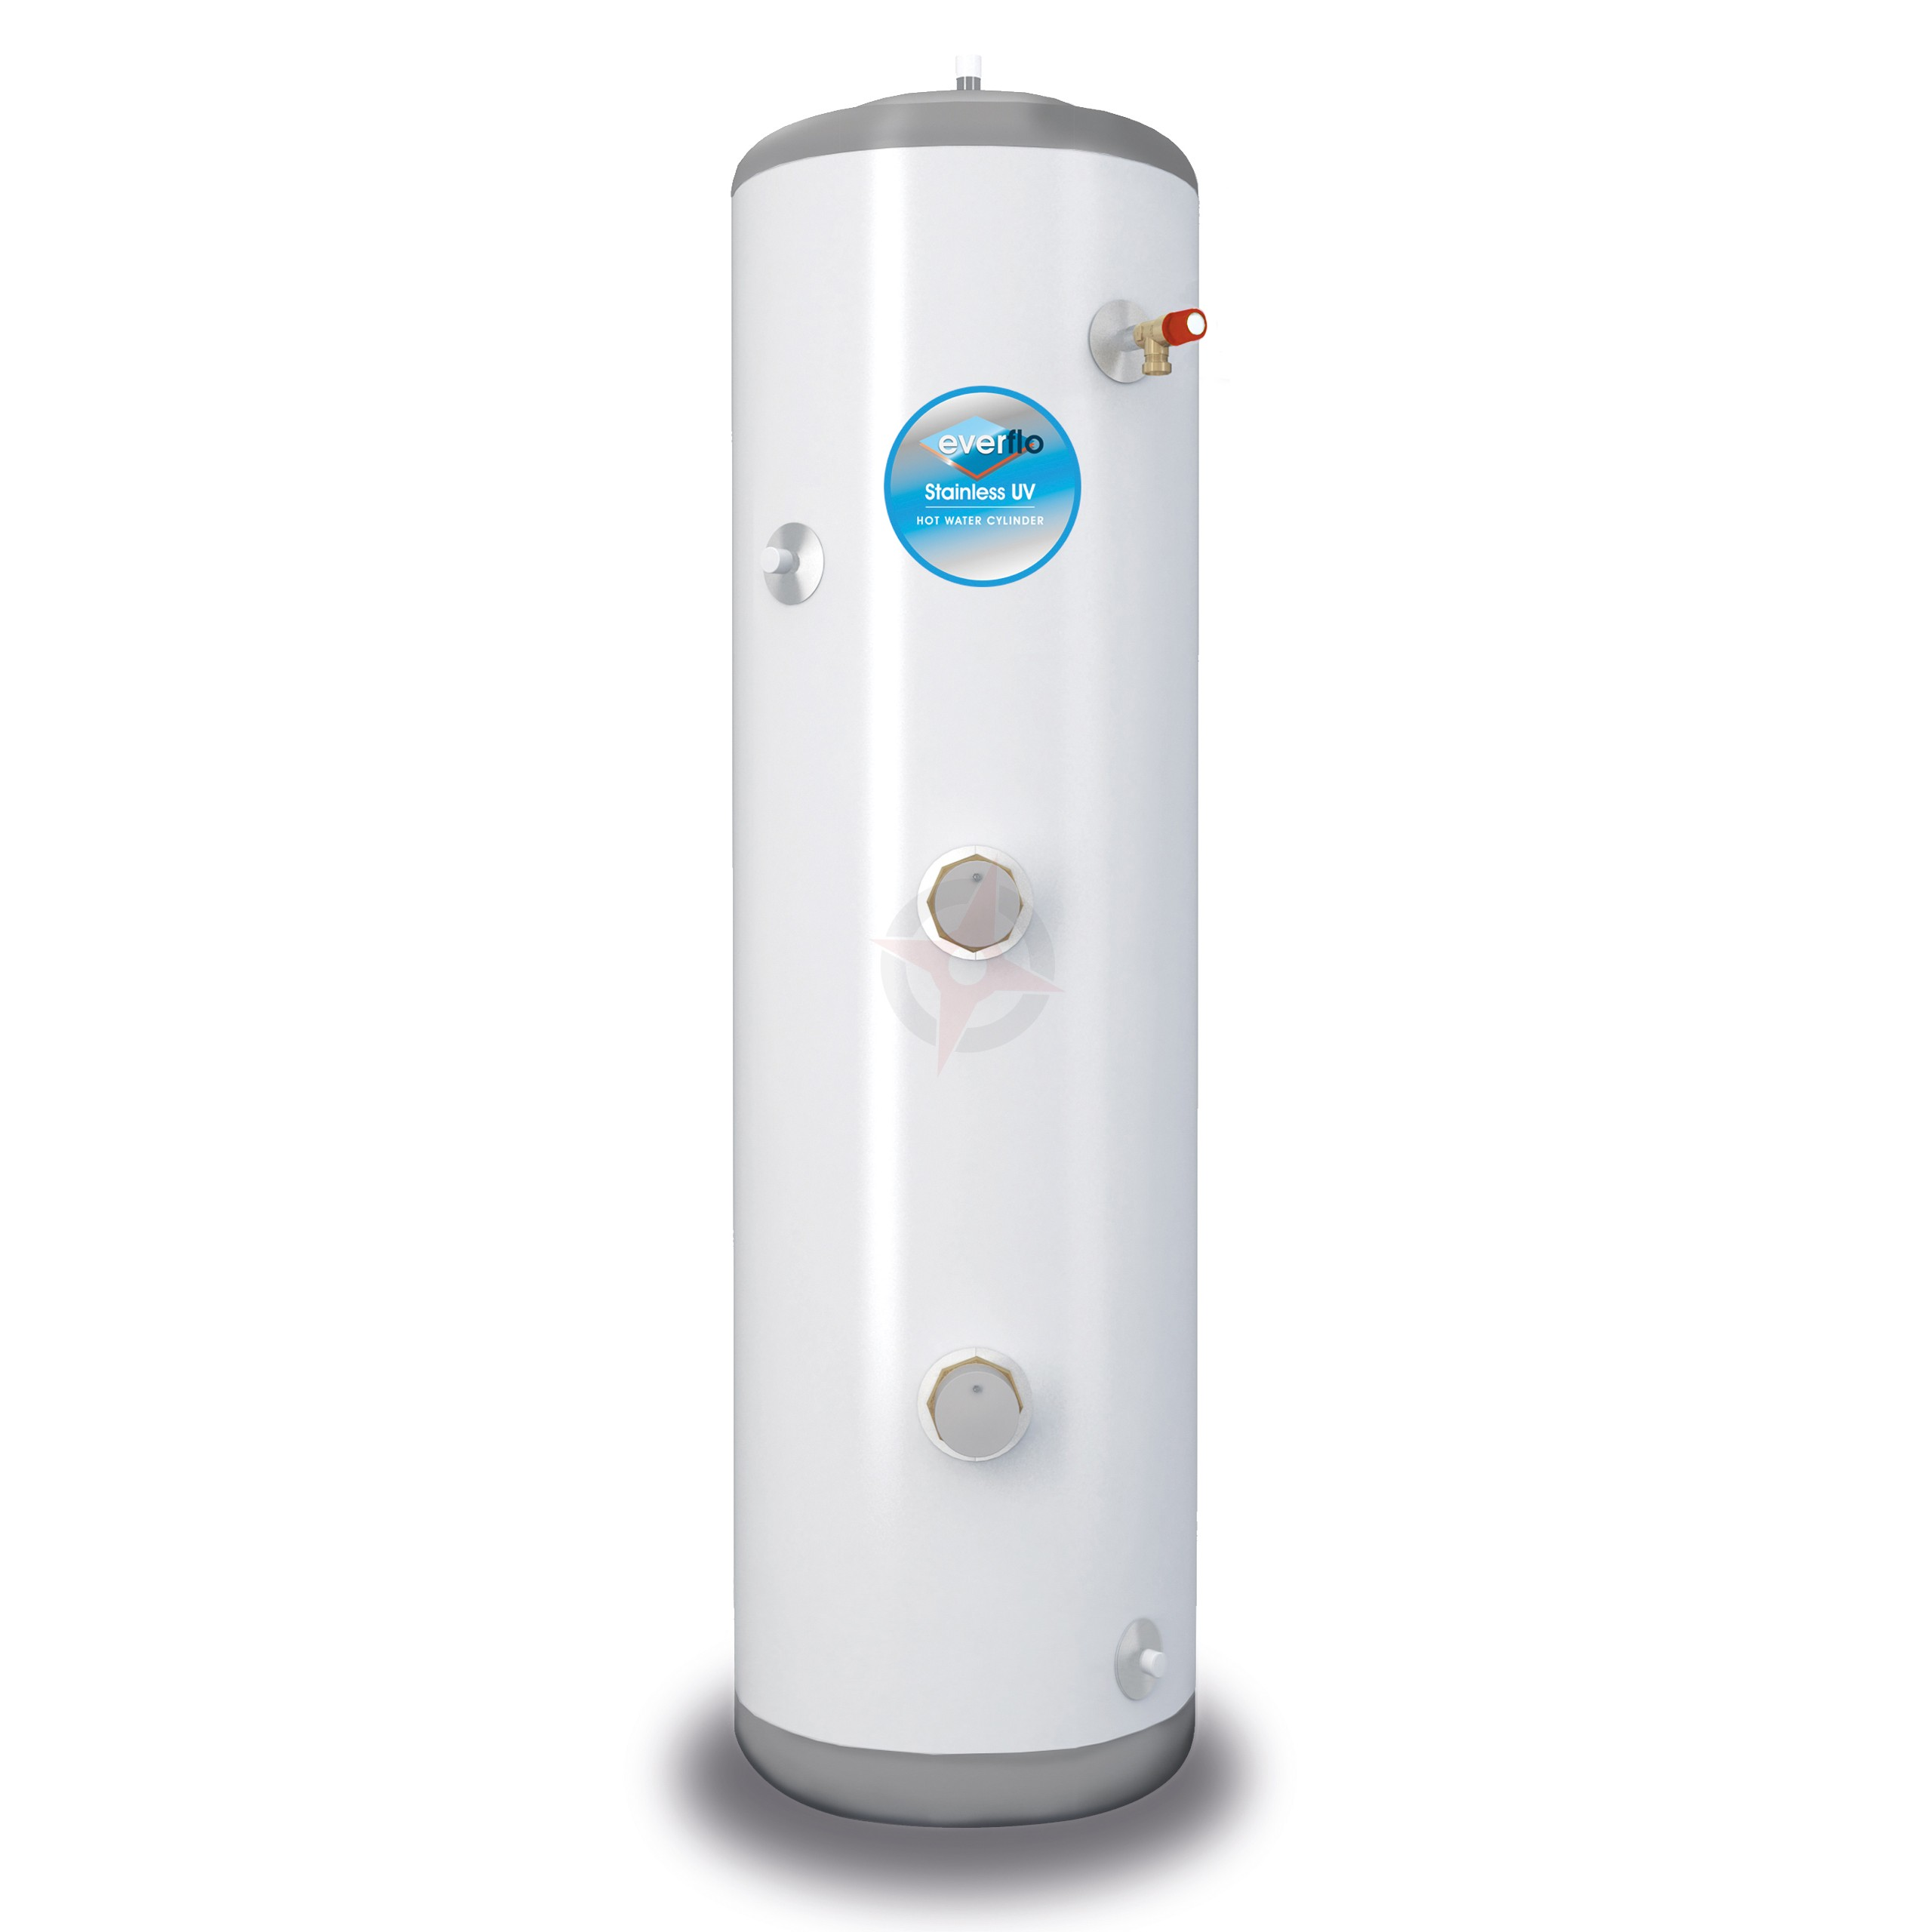 everflo Stainless 150L Slim-Fit Direct Unvented Hot Water Storage Cylinder & Kit